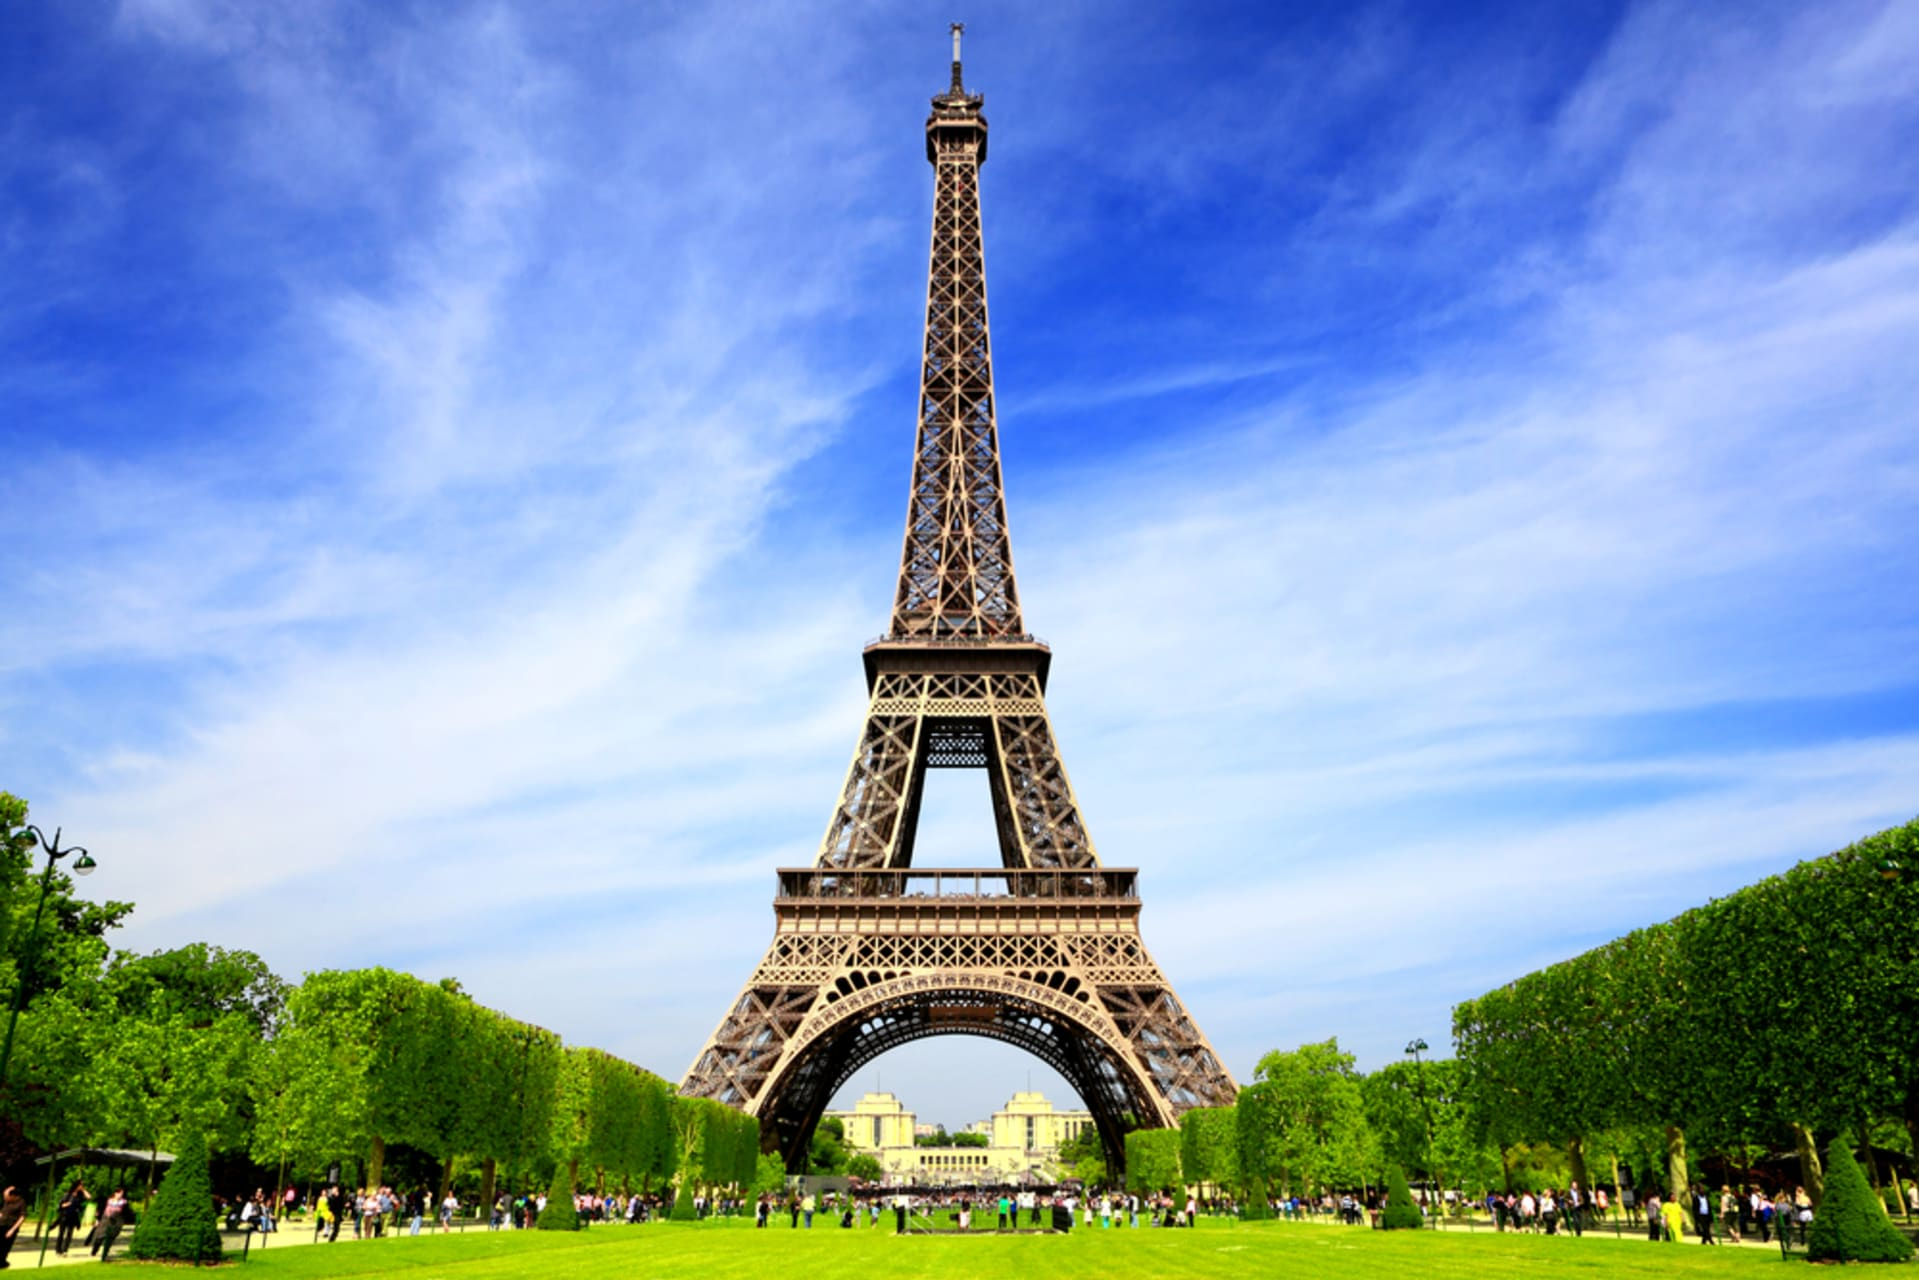 Paris - The Eiffel Tower and the Trocadero